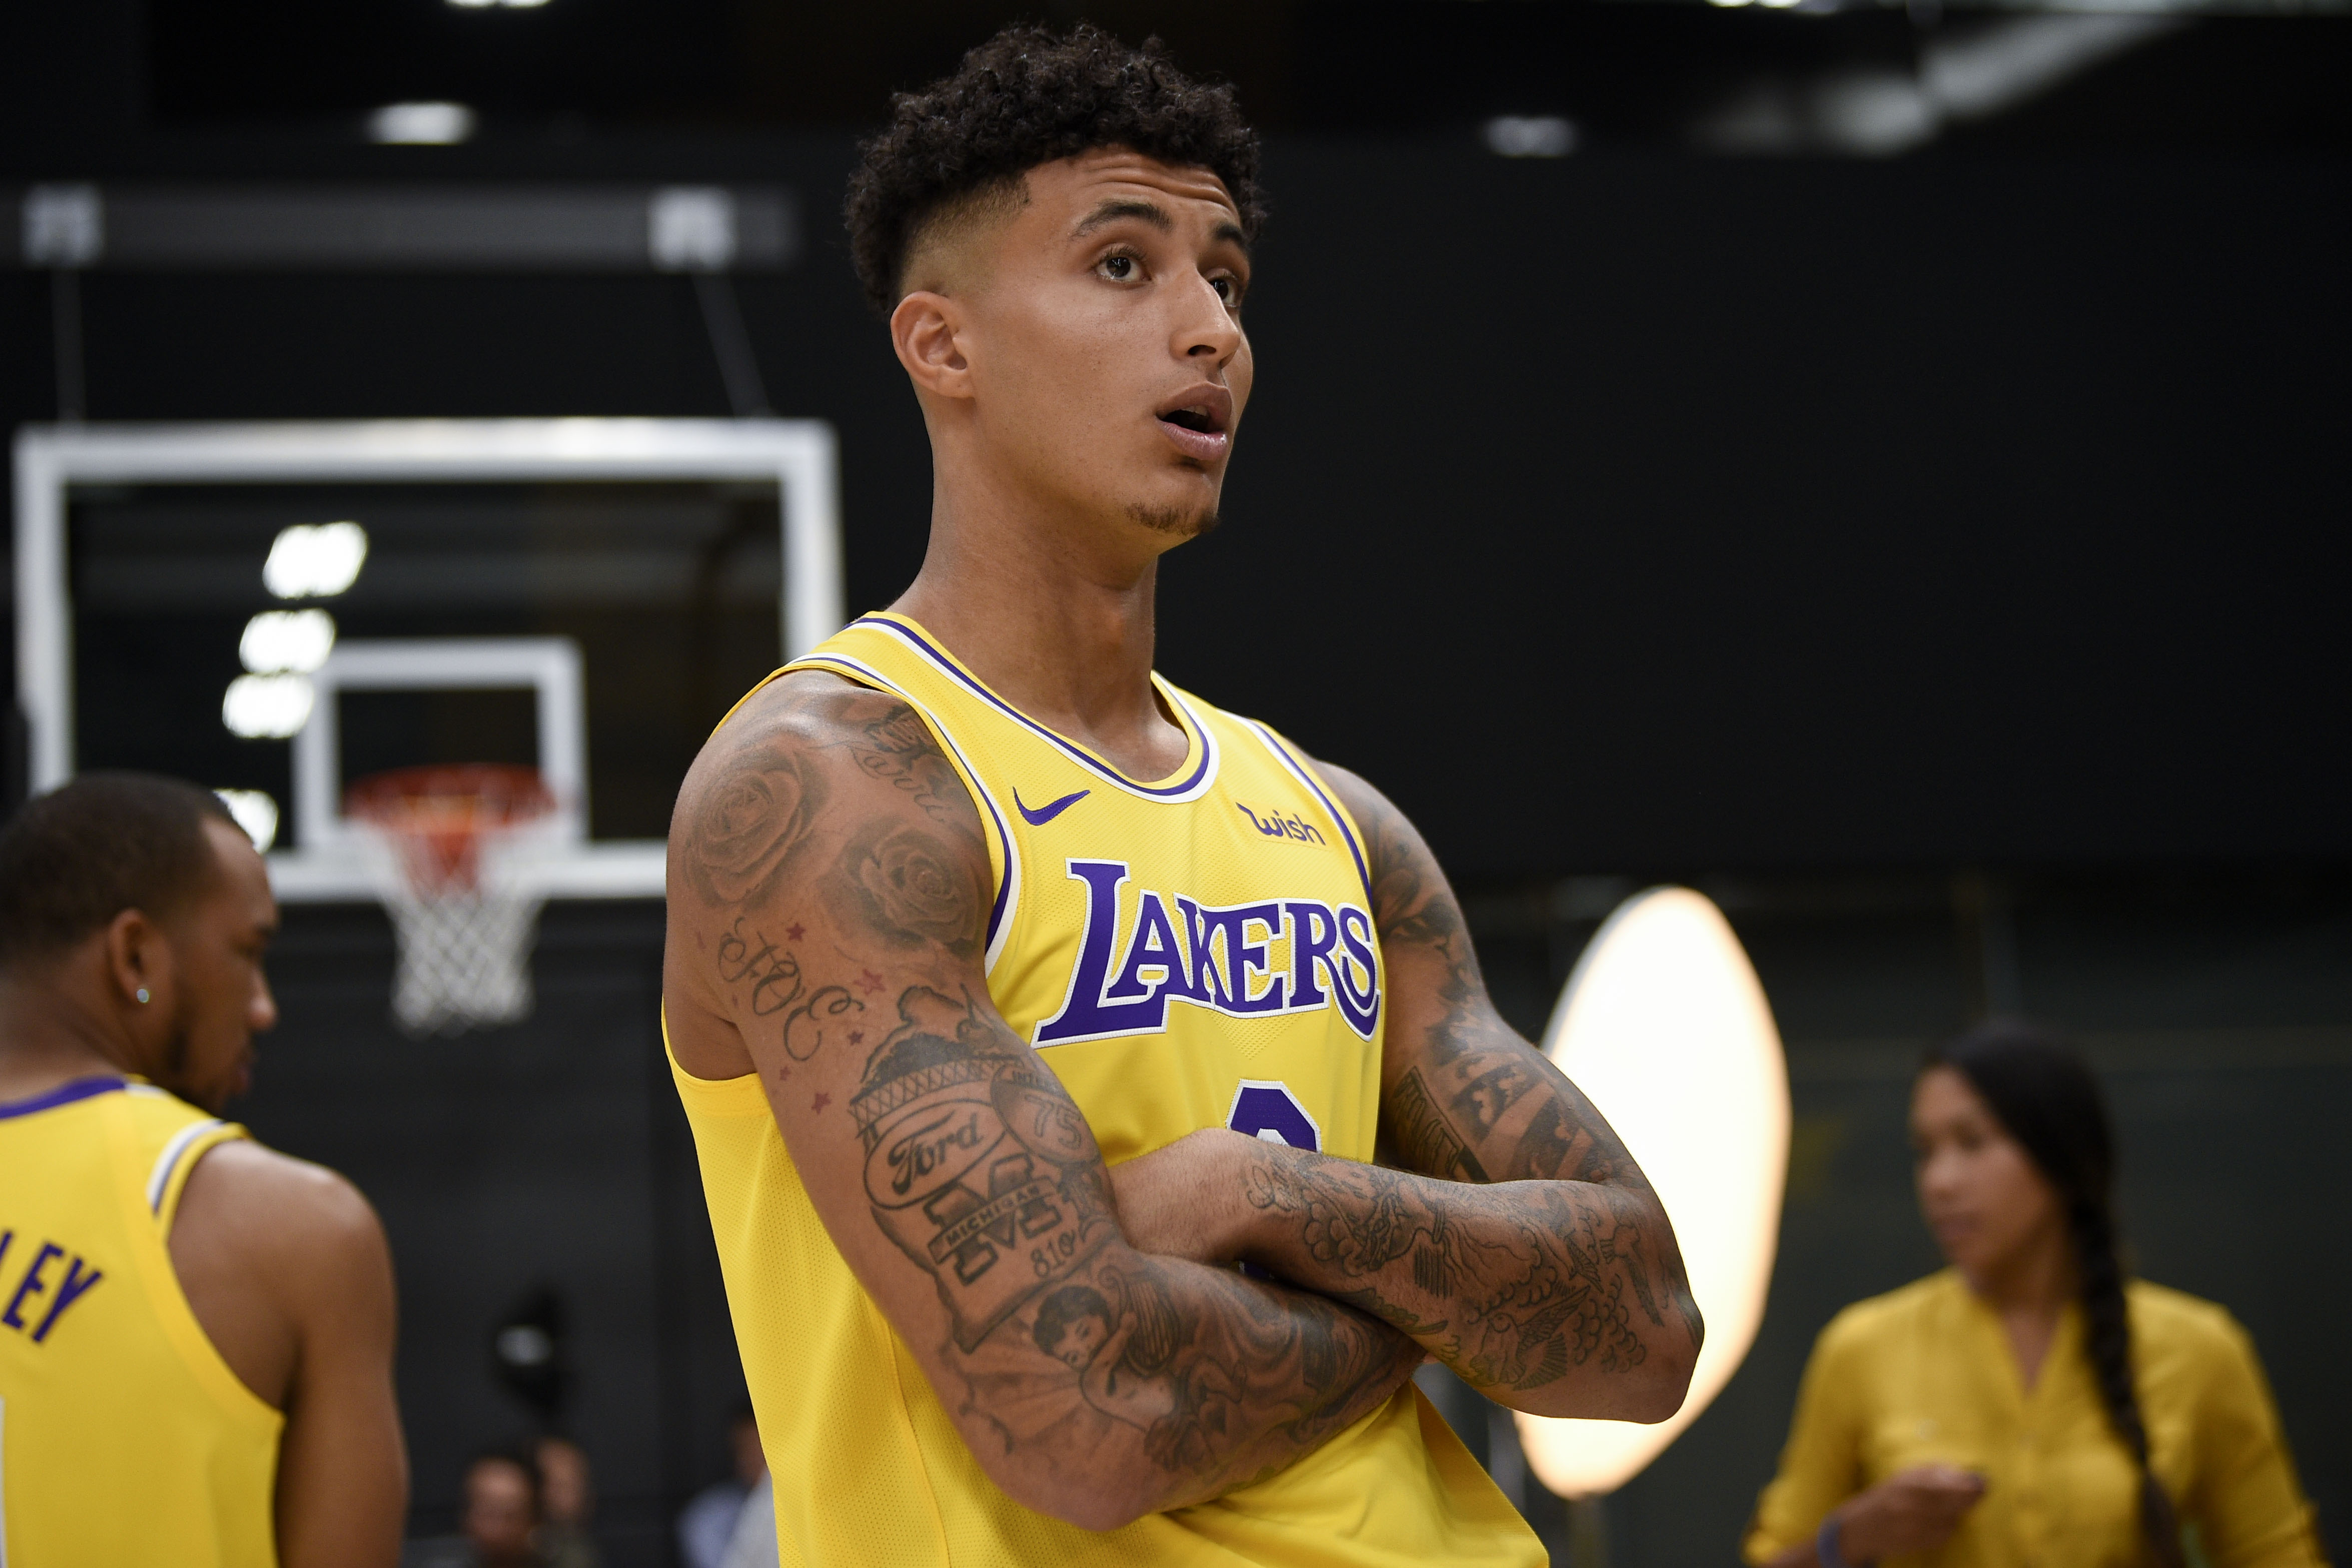 Kyle Kuzma draws inspiration from late rapper Nipsey Hussle, wants to help  community through Puma deal - Lakers Outsiders